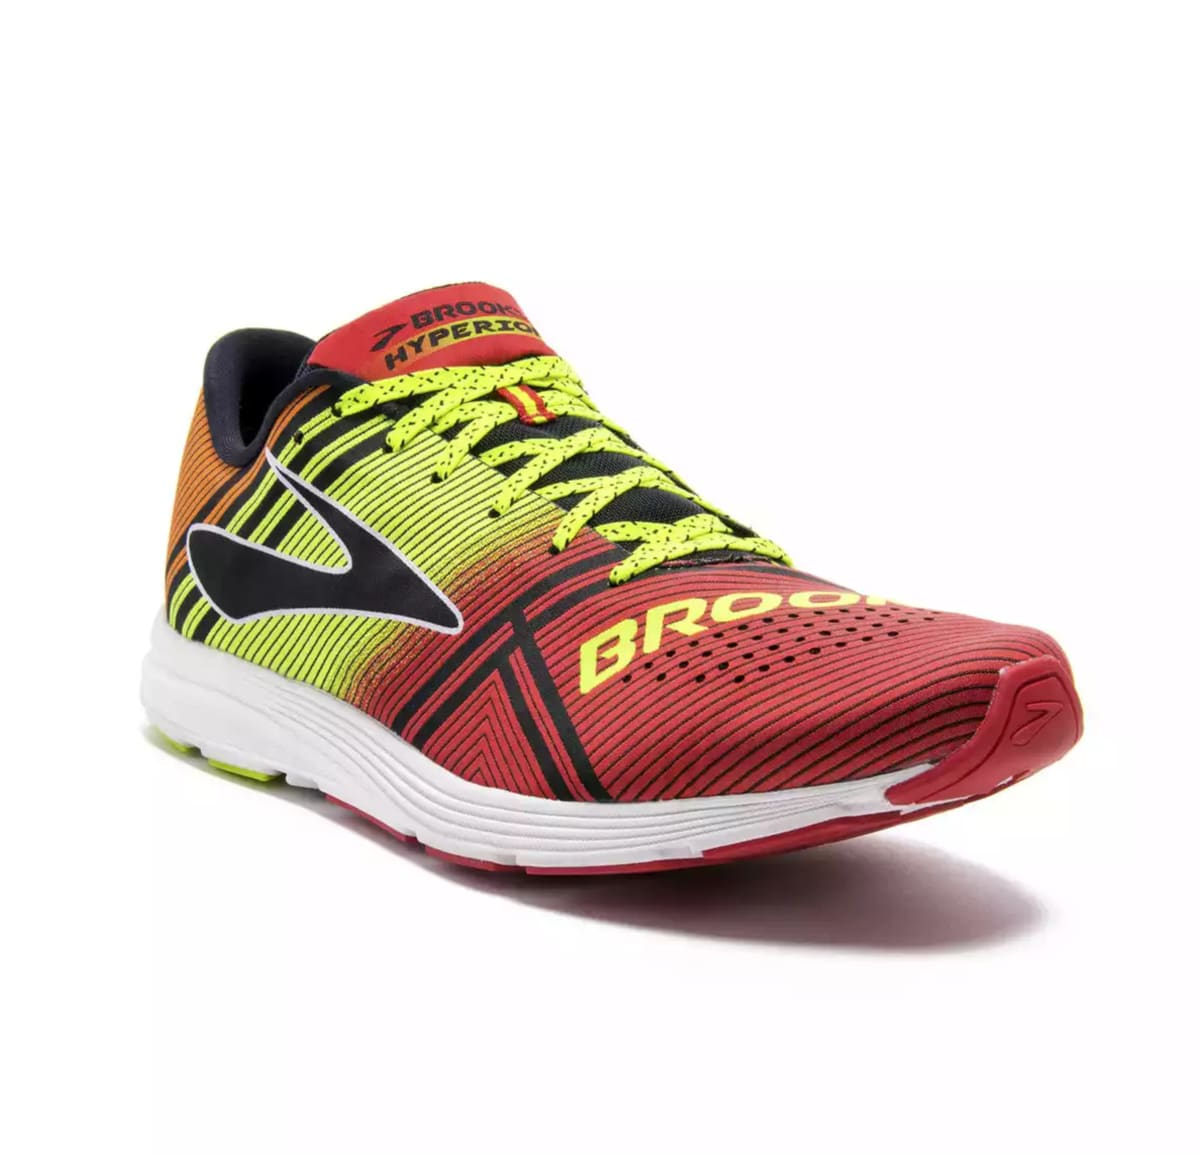 the best running shoes for high arches complex